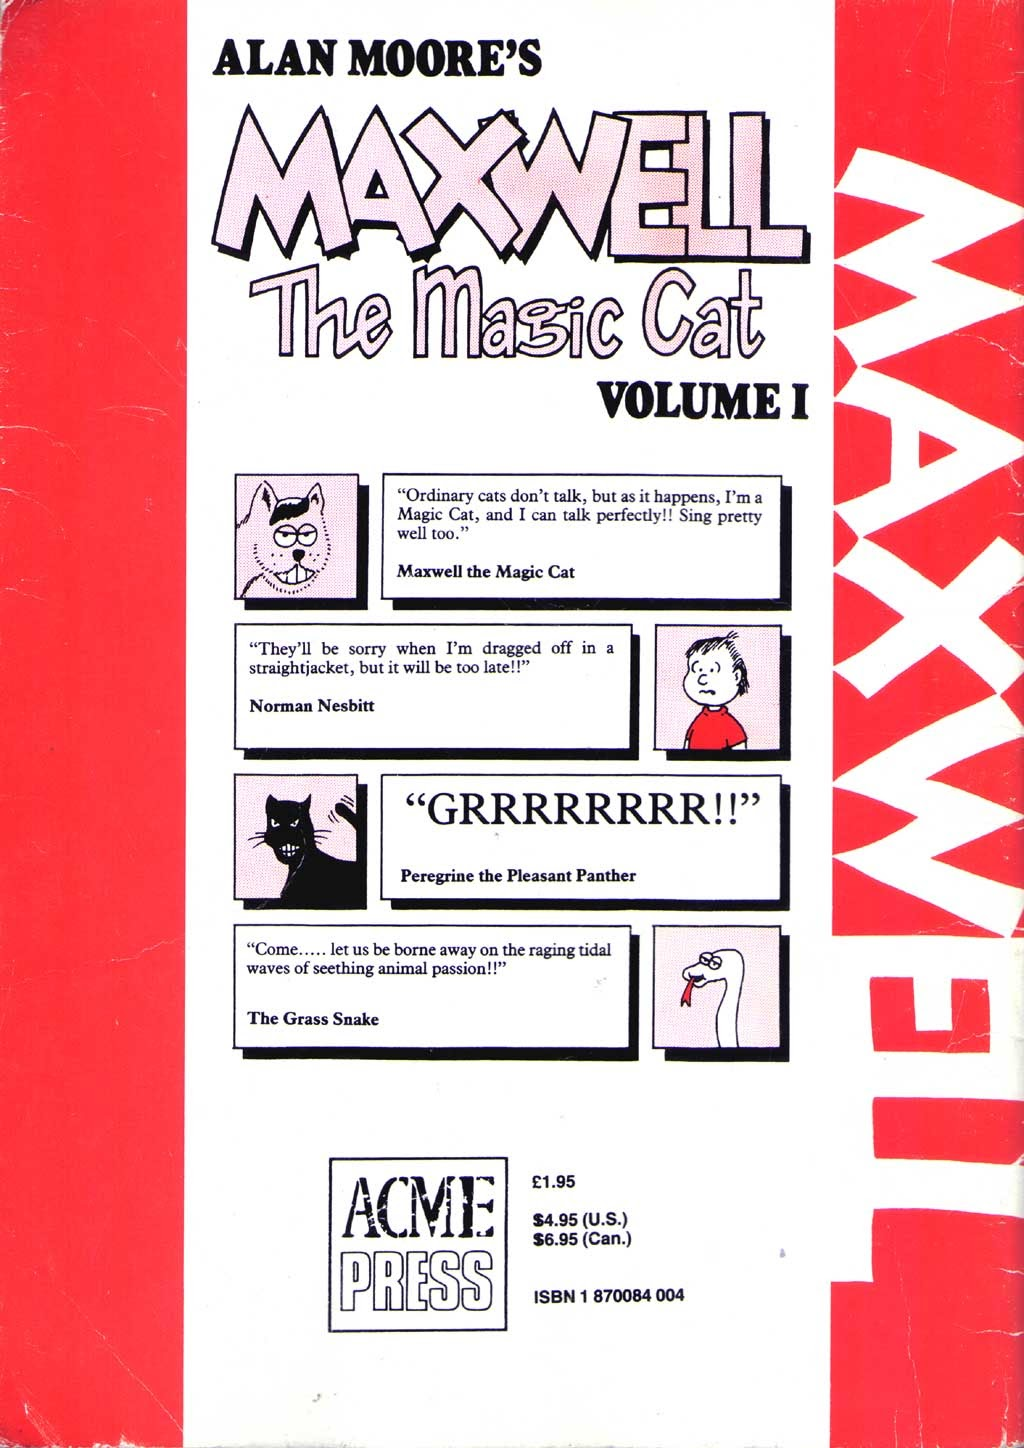 Read online Alan Moore's Maxwell the Magic Cat comic -  Issue #1 - 32